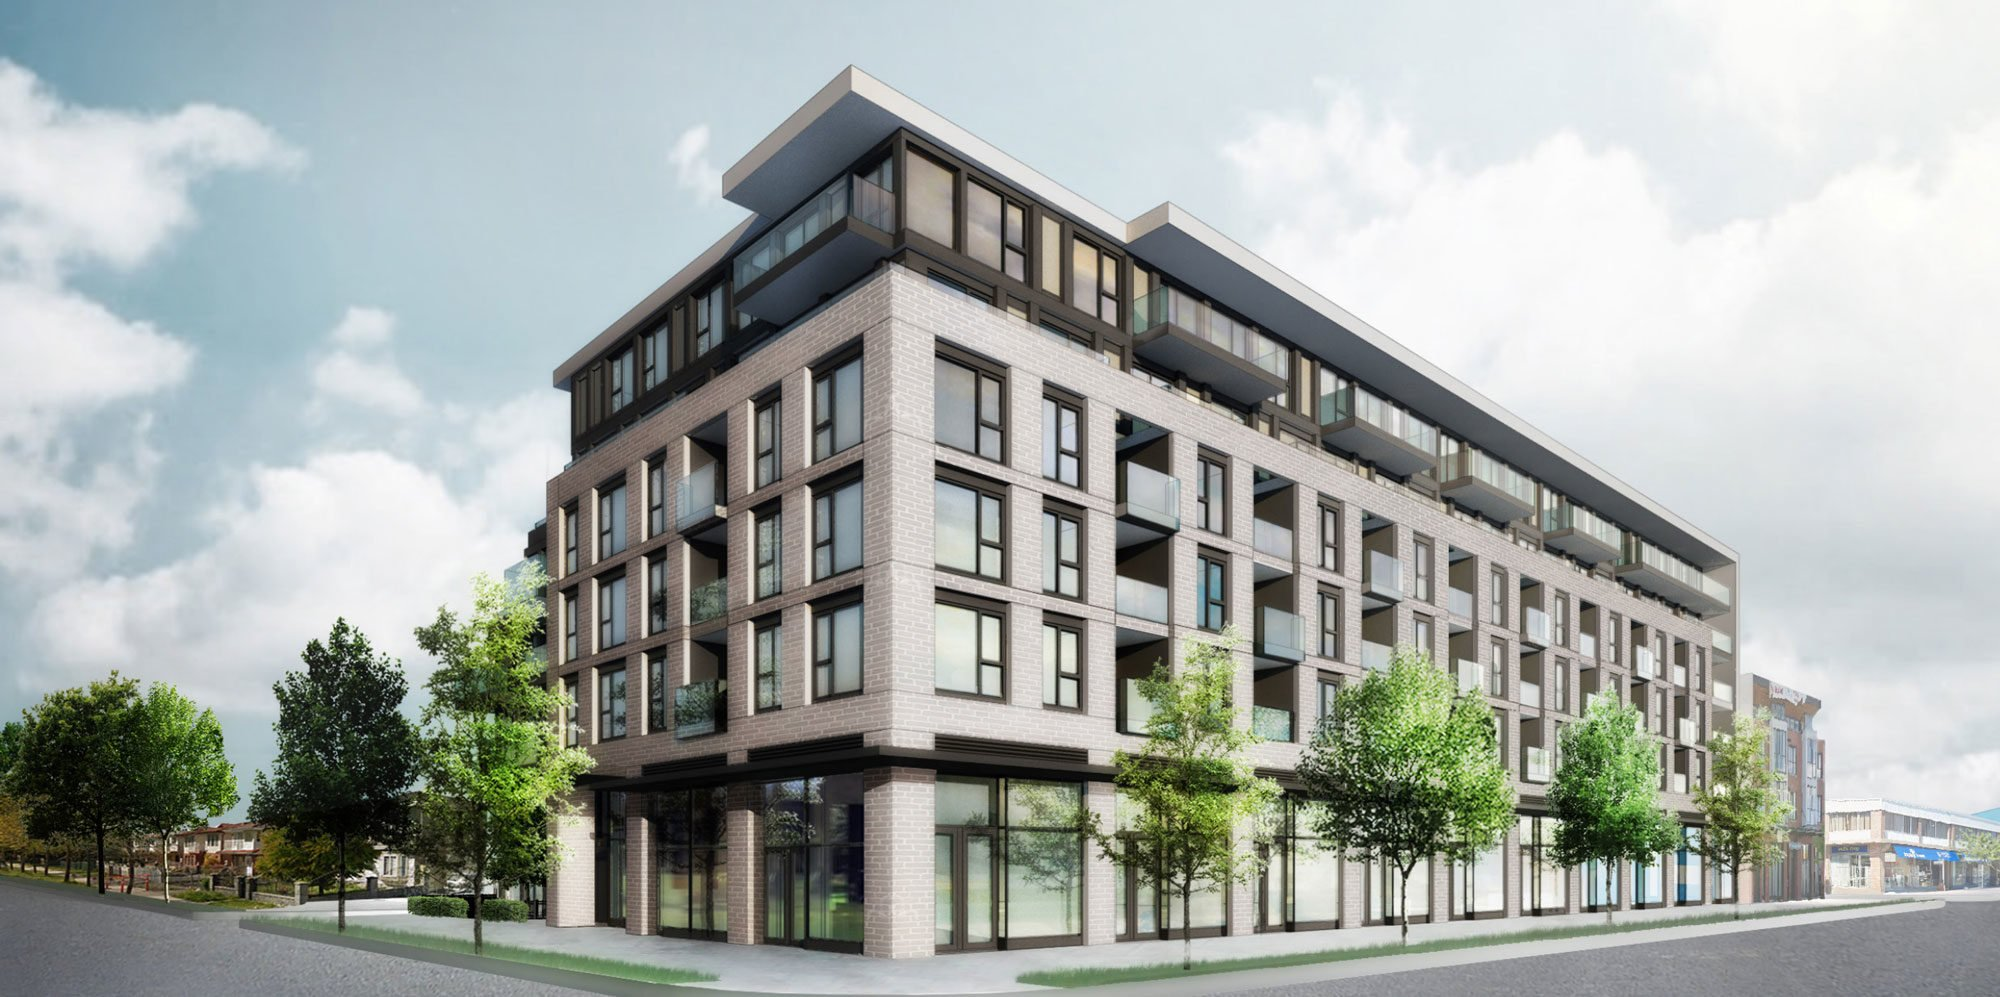 Secured market rental apartments planned at Fraser Street and East 19th